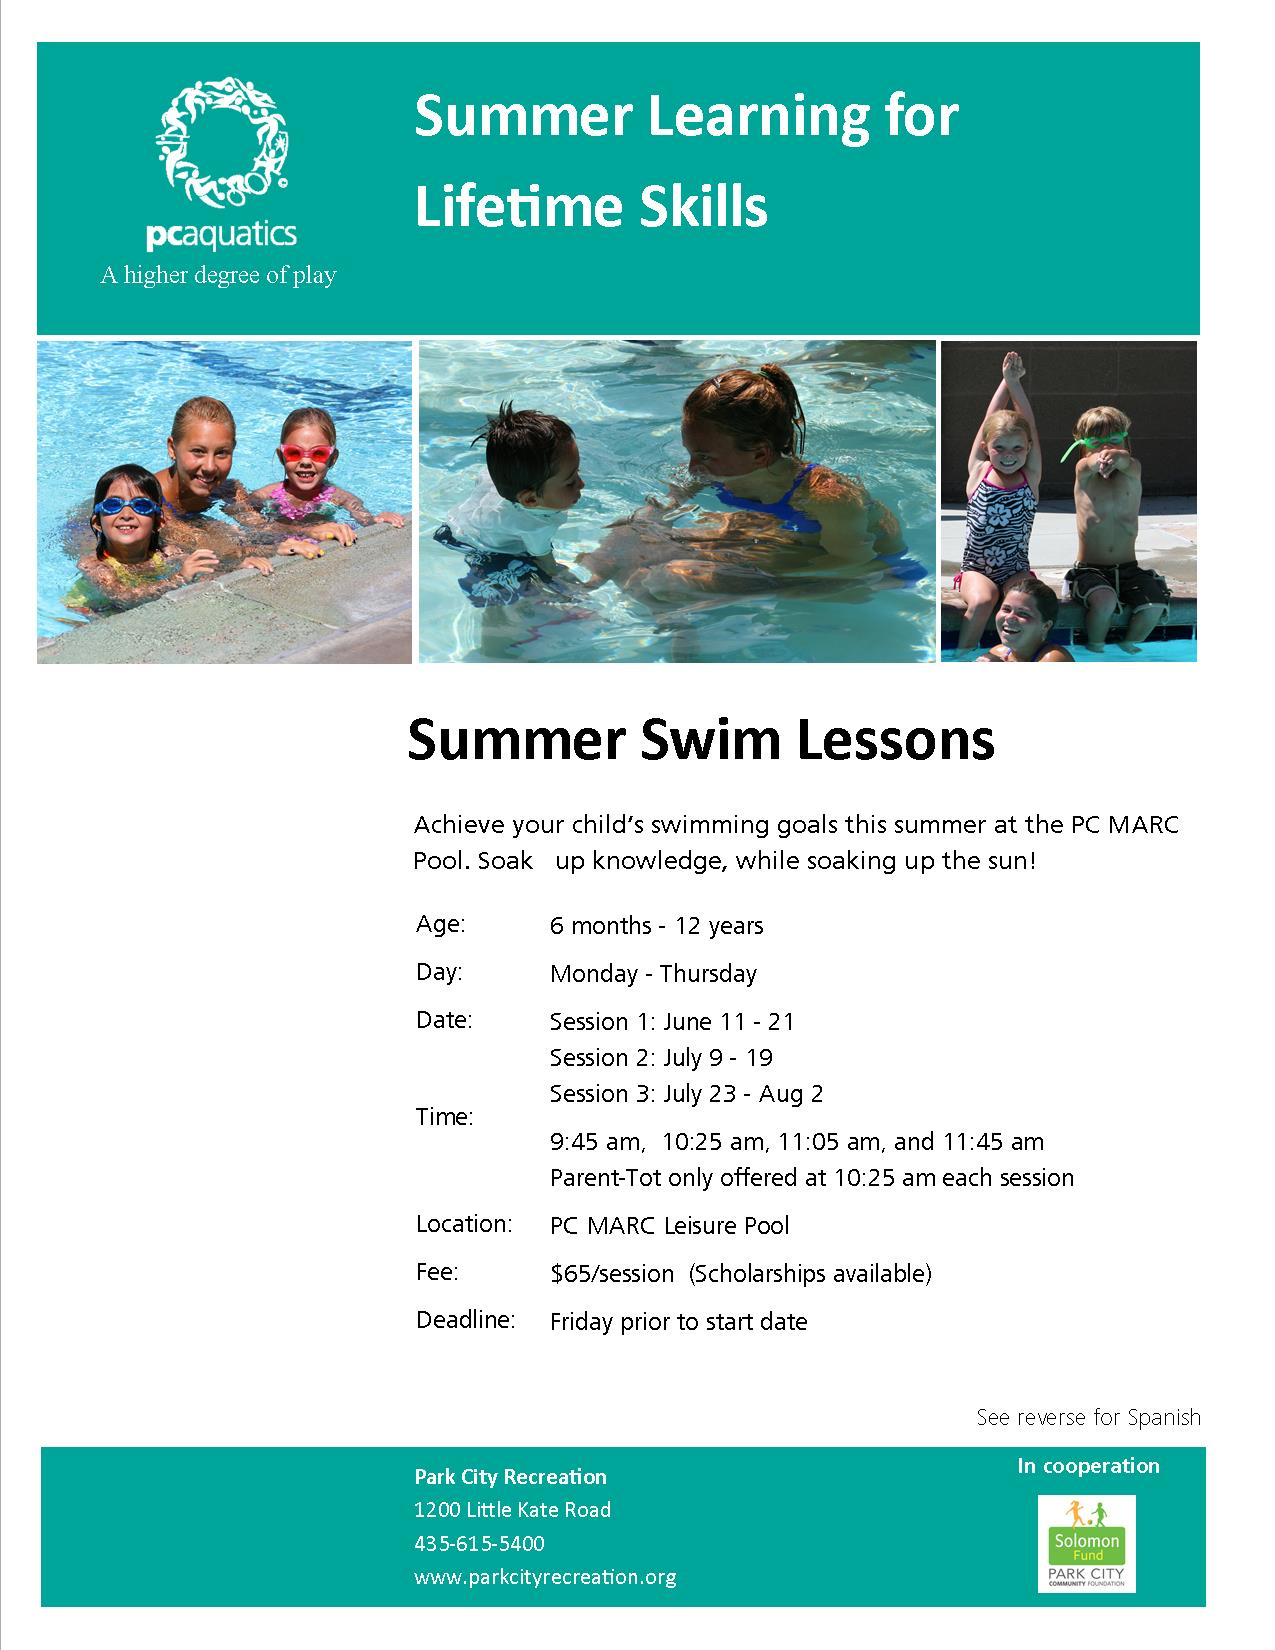 Summer Swim Lessons 2018 flyer